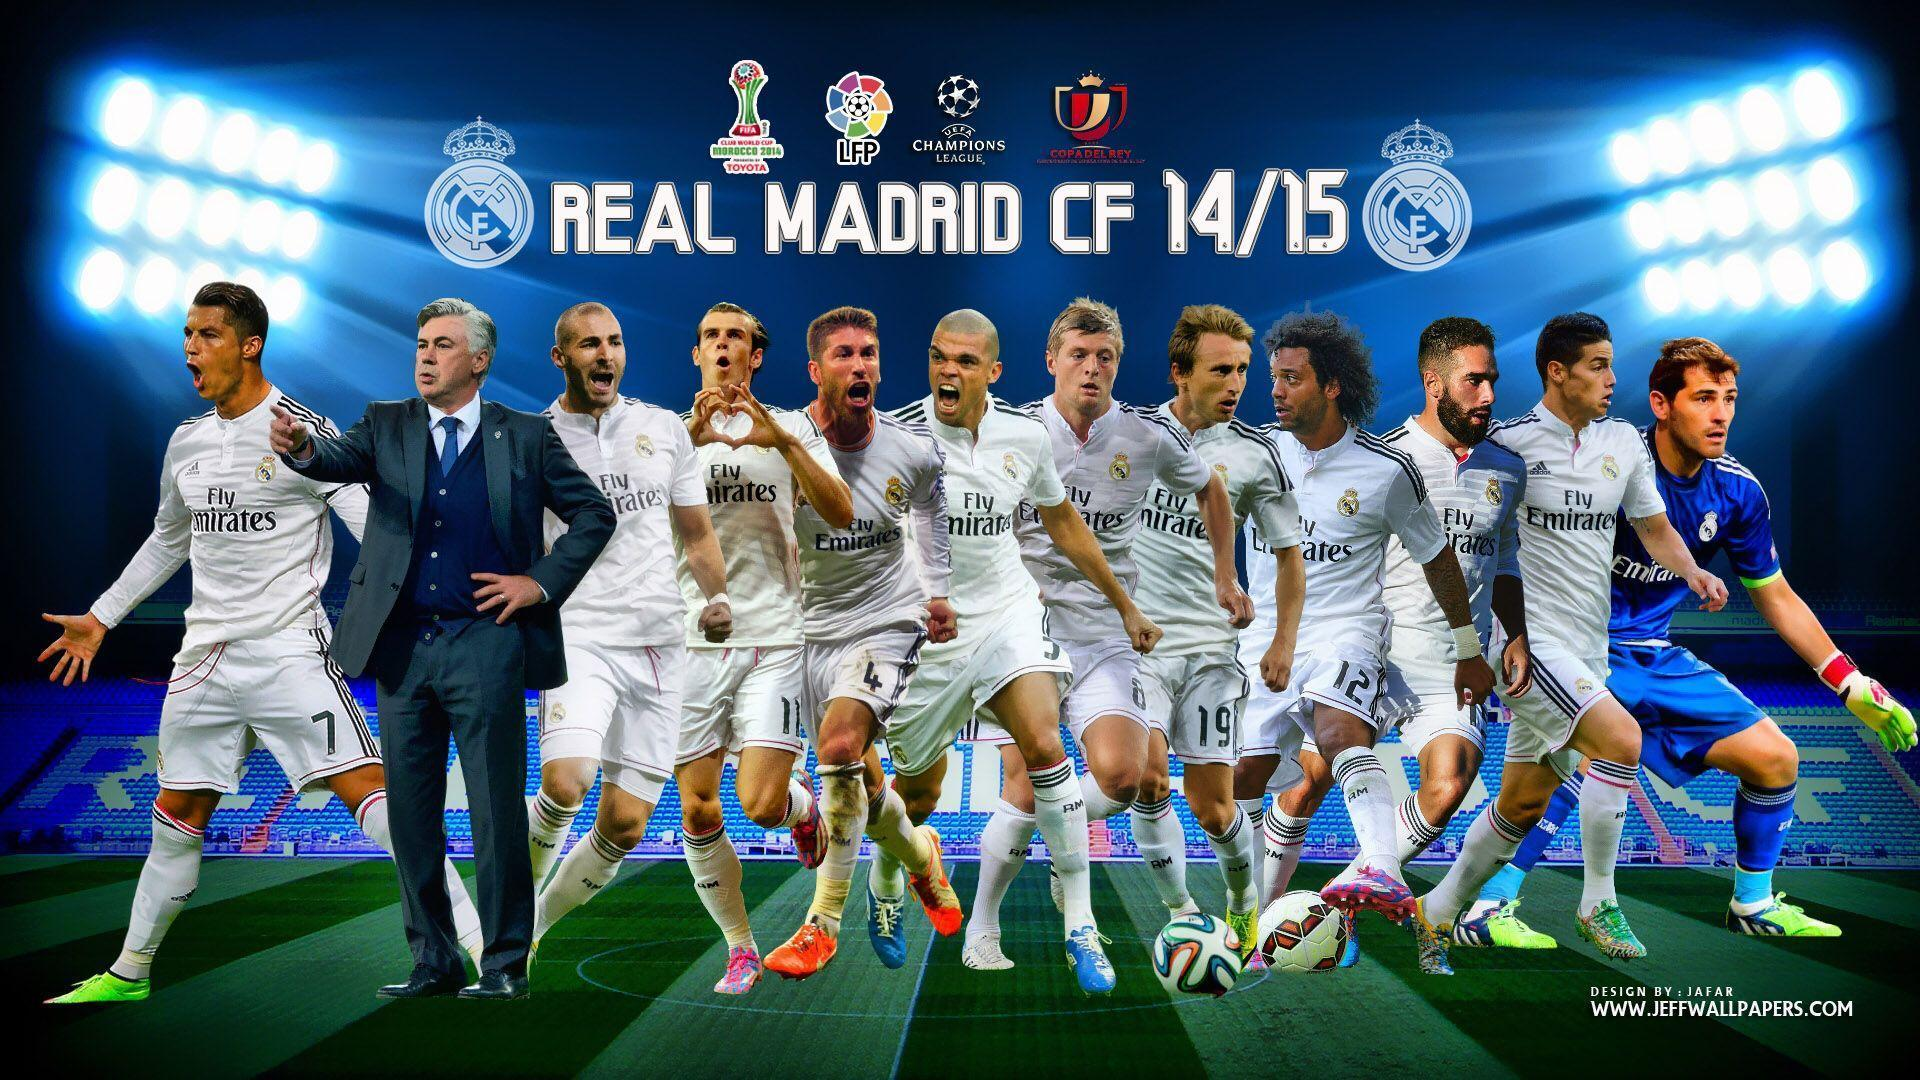 Wallpapers Real Madrid Full Hd Afari On Cover Team High Resolution